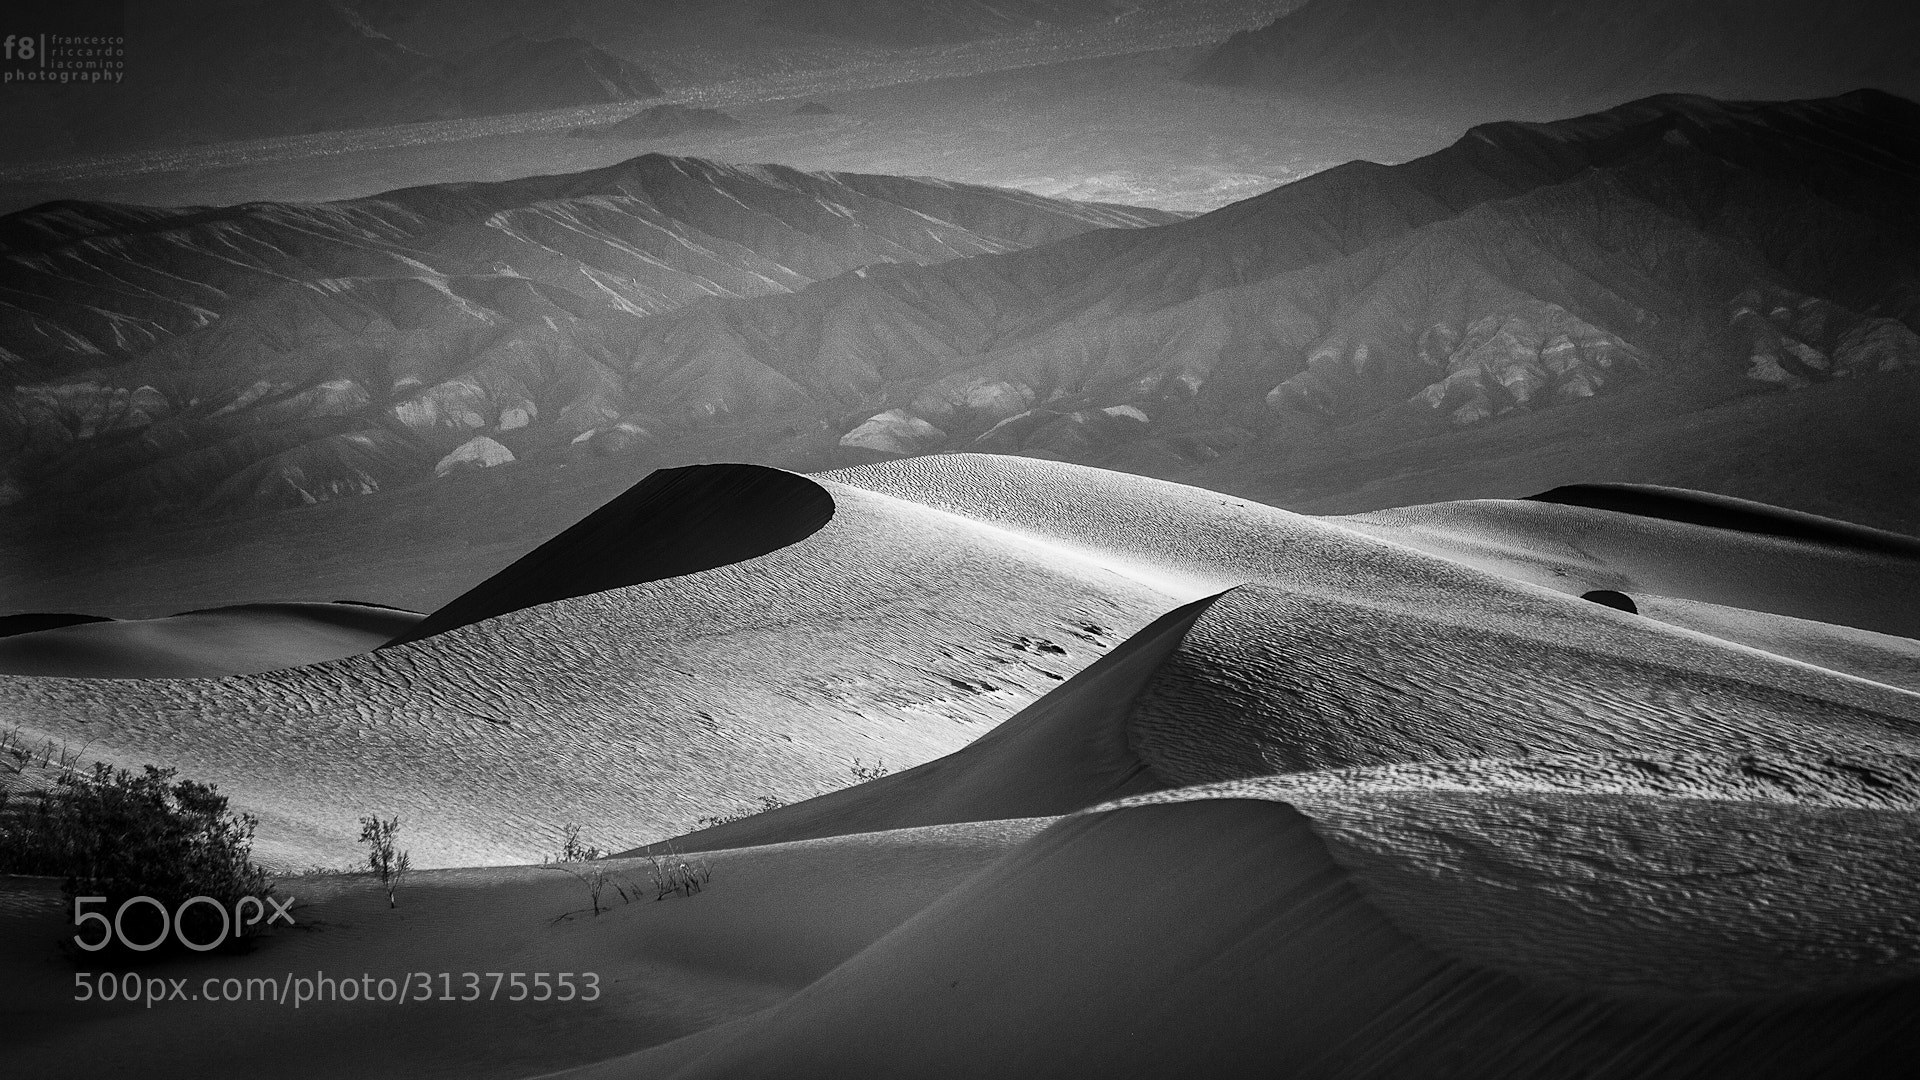 Photograph Death Valley by Francesco Riccardo Iacomino on 500px